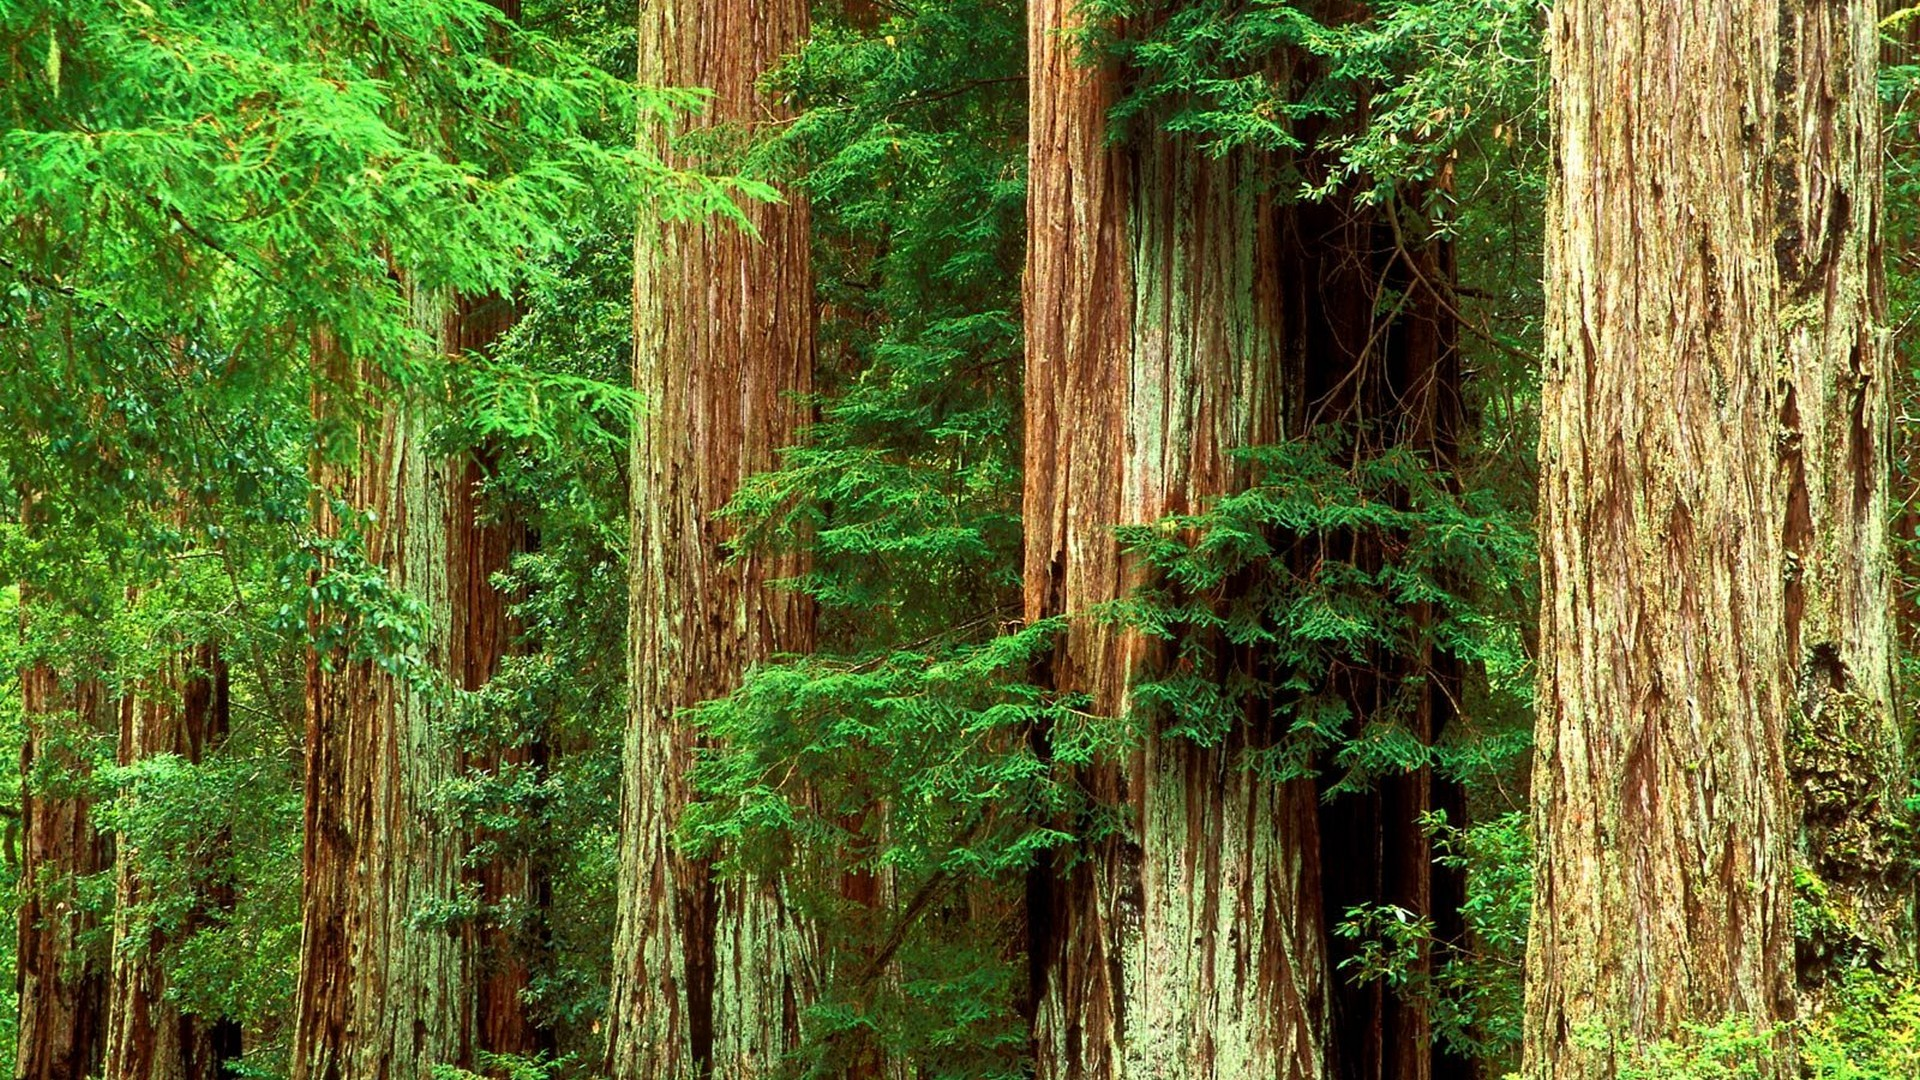 lo rewilding trees forests - HD1600×1200